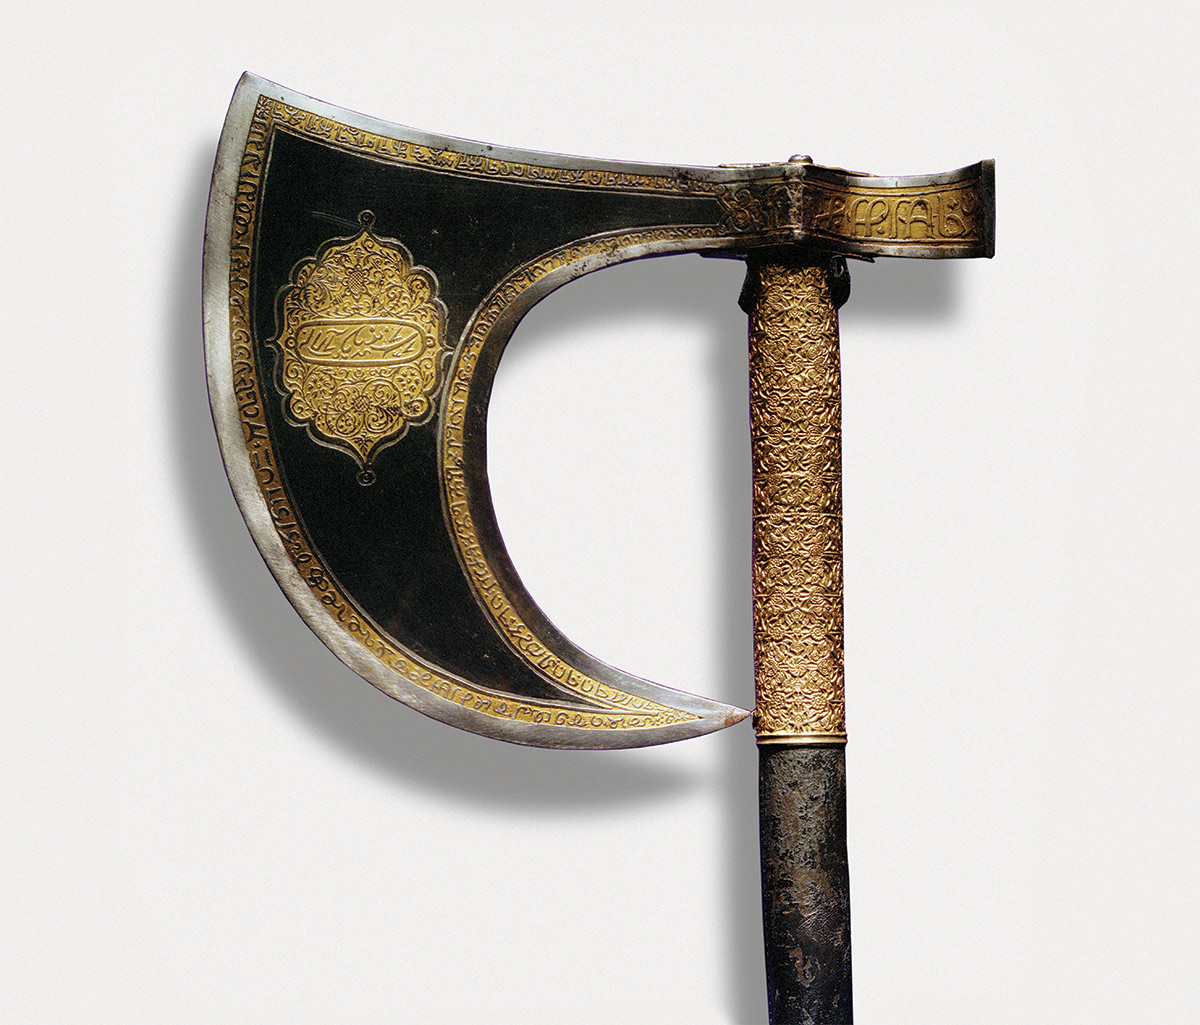 Hatchet of Mehmed III, c.1600.